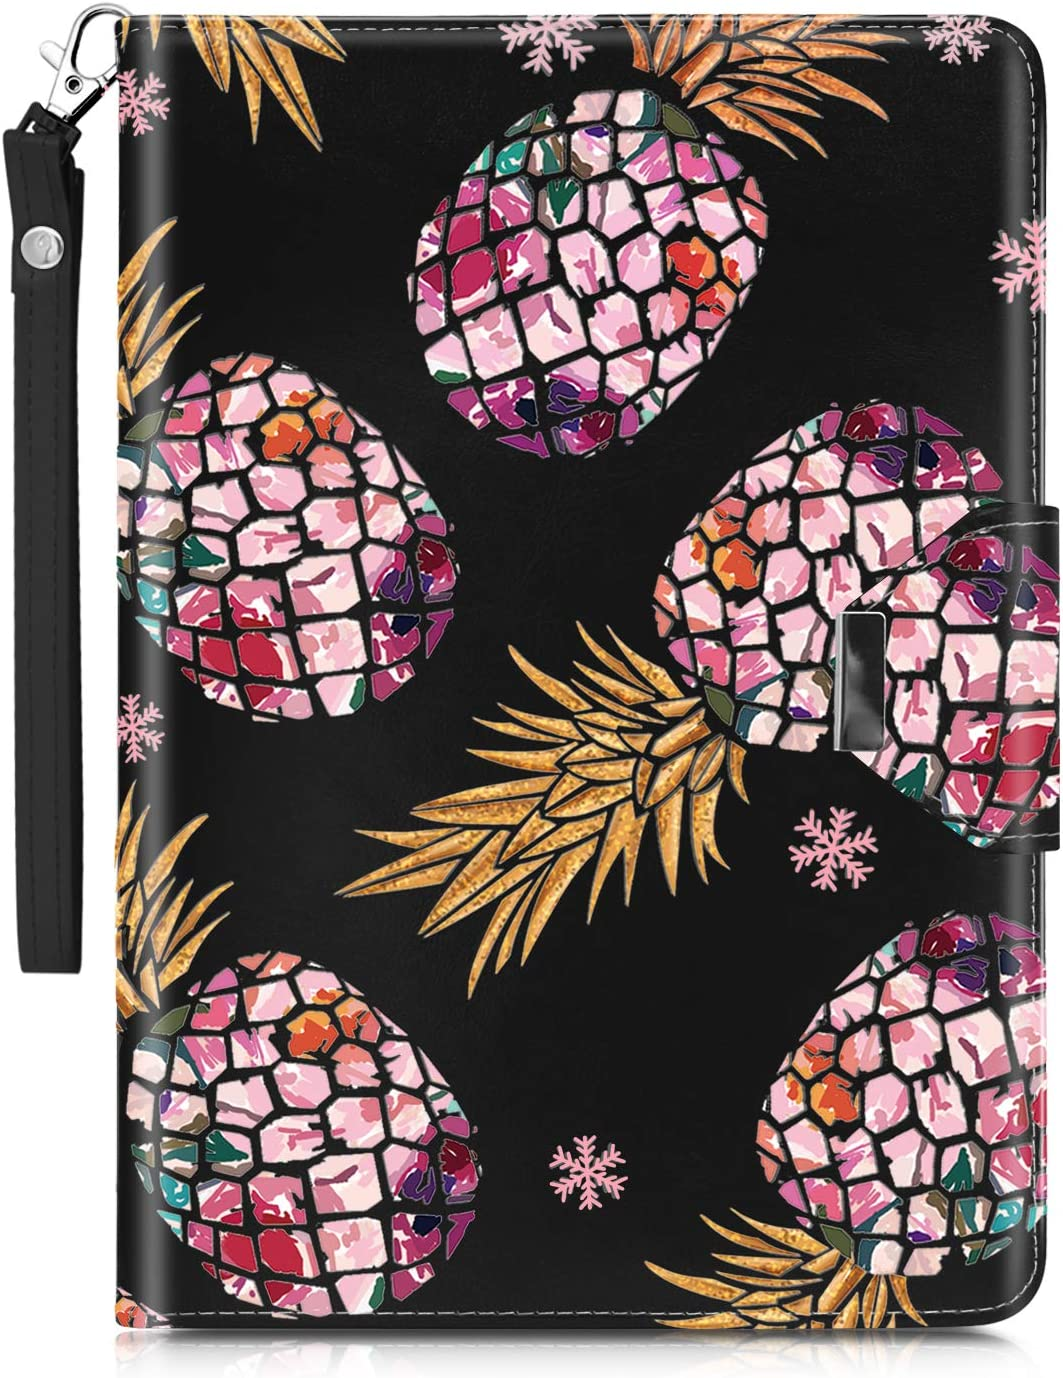 Dailylux New iPad 9.7 inch 2018/2017 Case,Multiple Angles Slim Stand Heavy Duty PU Leather Cover with Card Slots Protective Case for Apple iPad 9.7 inch w/Auto Sleep Wake-Pineapple Black